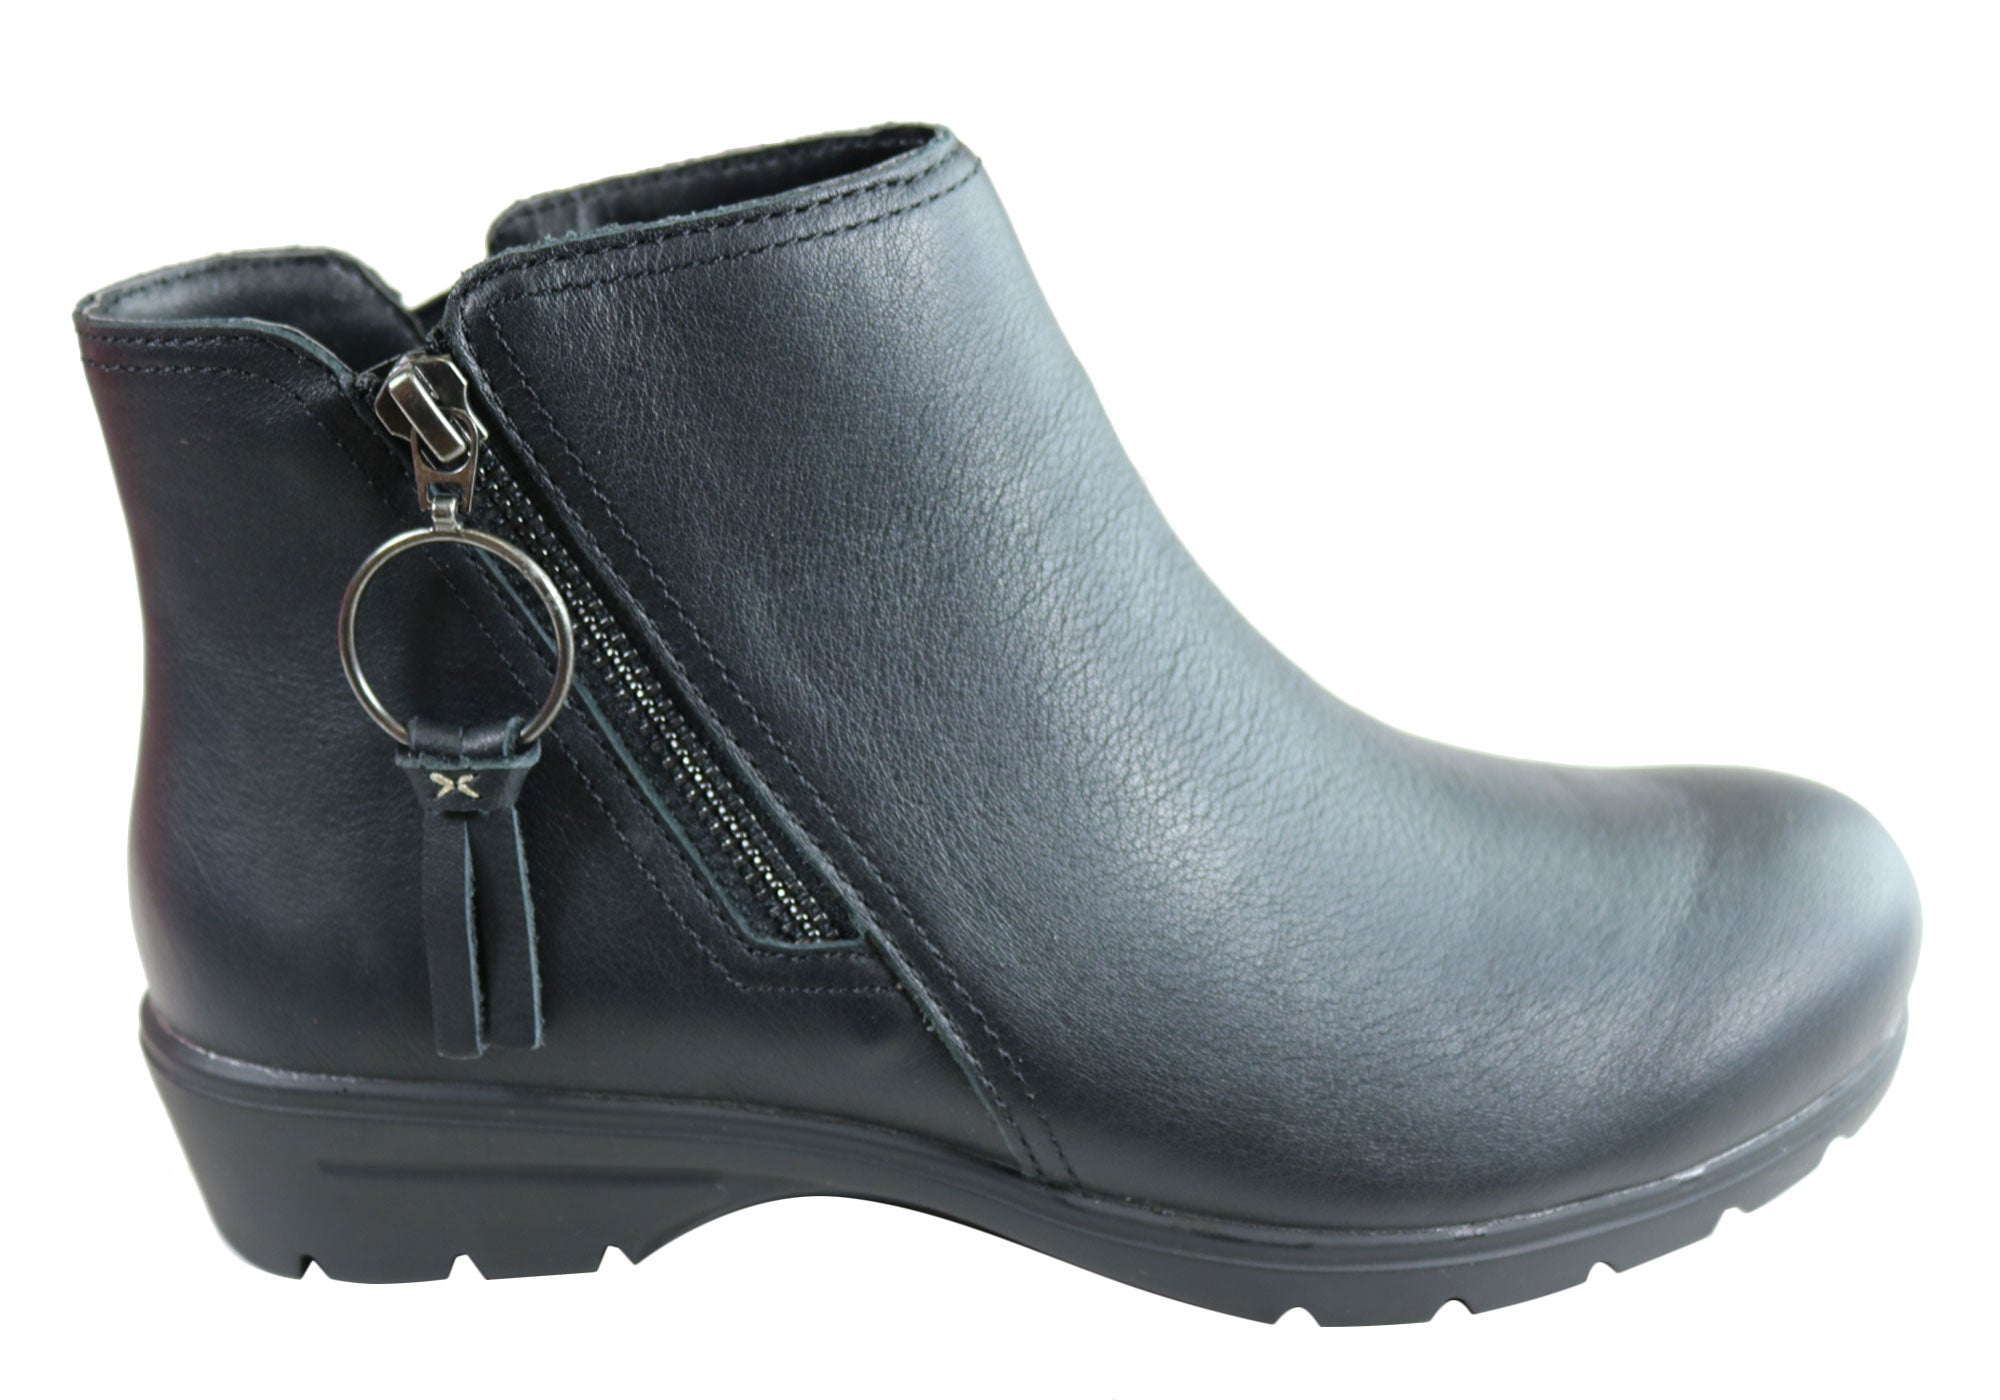 Skechers Womens Metronome Leather Ankle